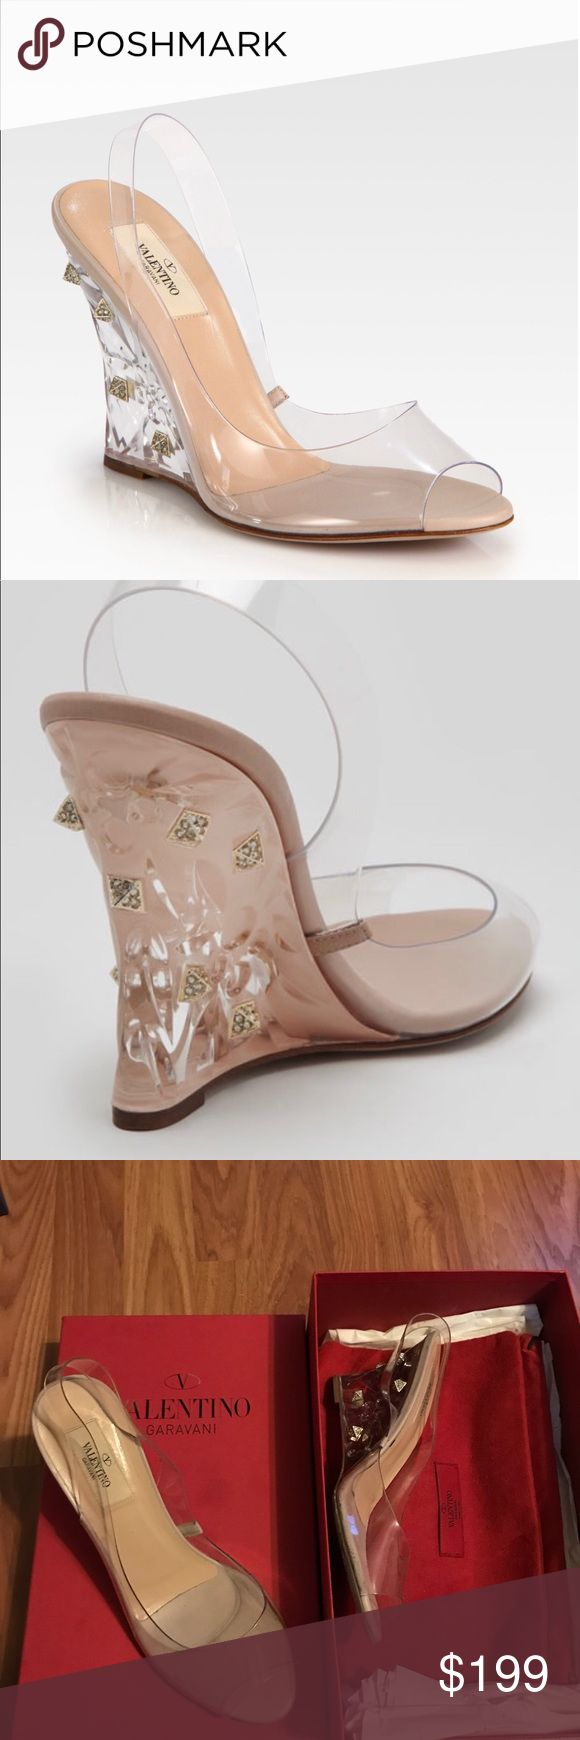 Valentino Wedge Sandal Valentino Wedge Sandal. The wedge is stuffed. This looks like a Cinderella shoe. It's a size 38. Has been worn a couple of times. Valentino Shoes Wedges